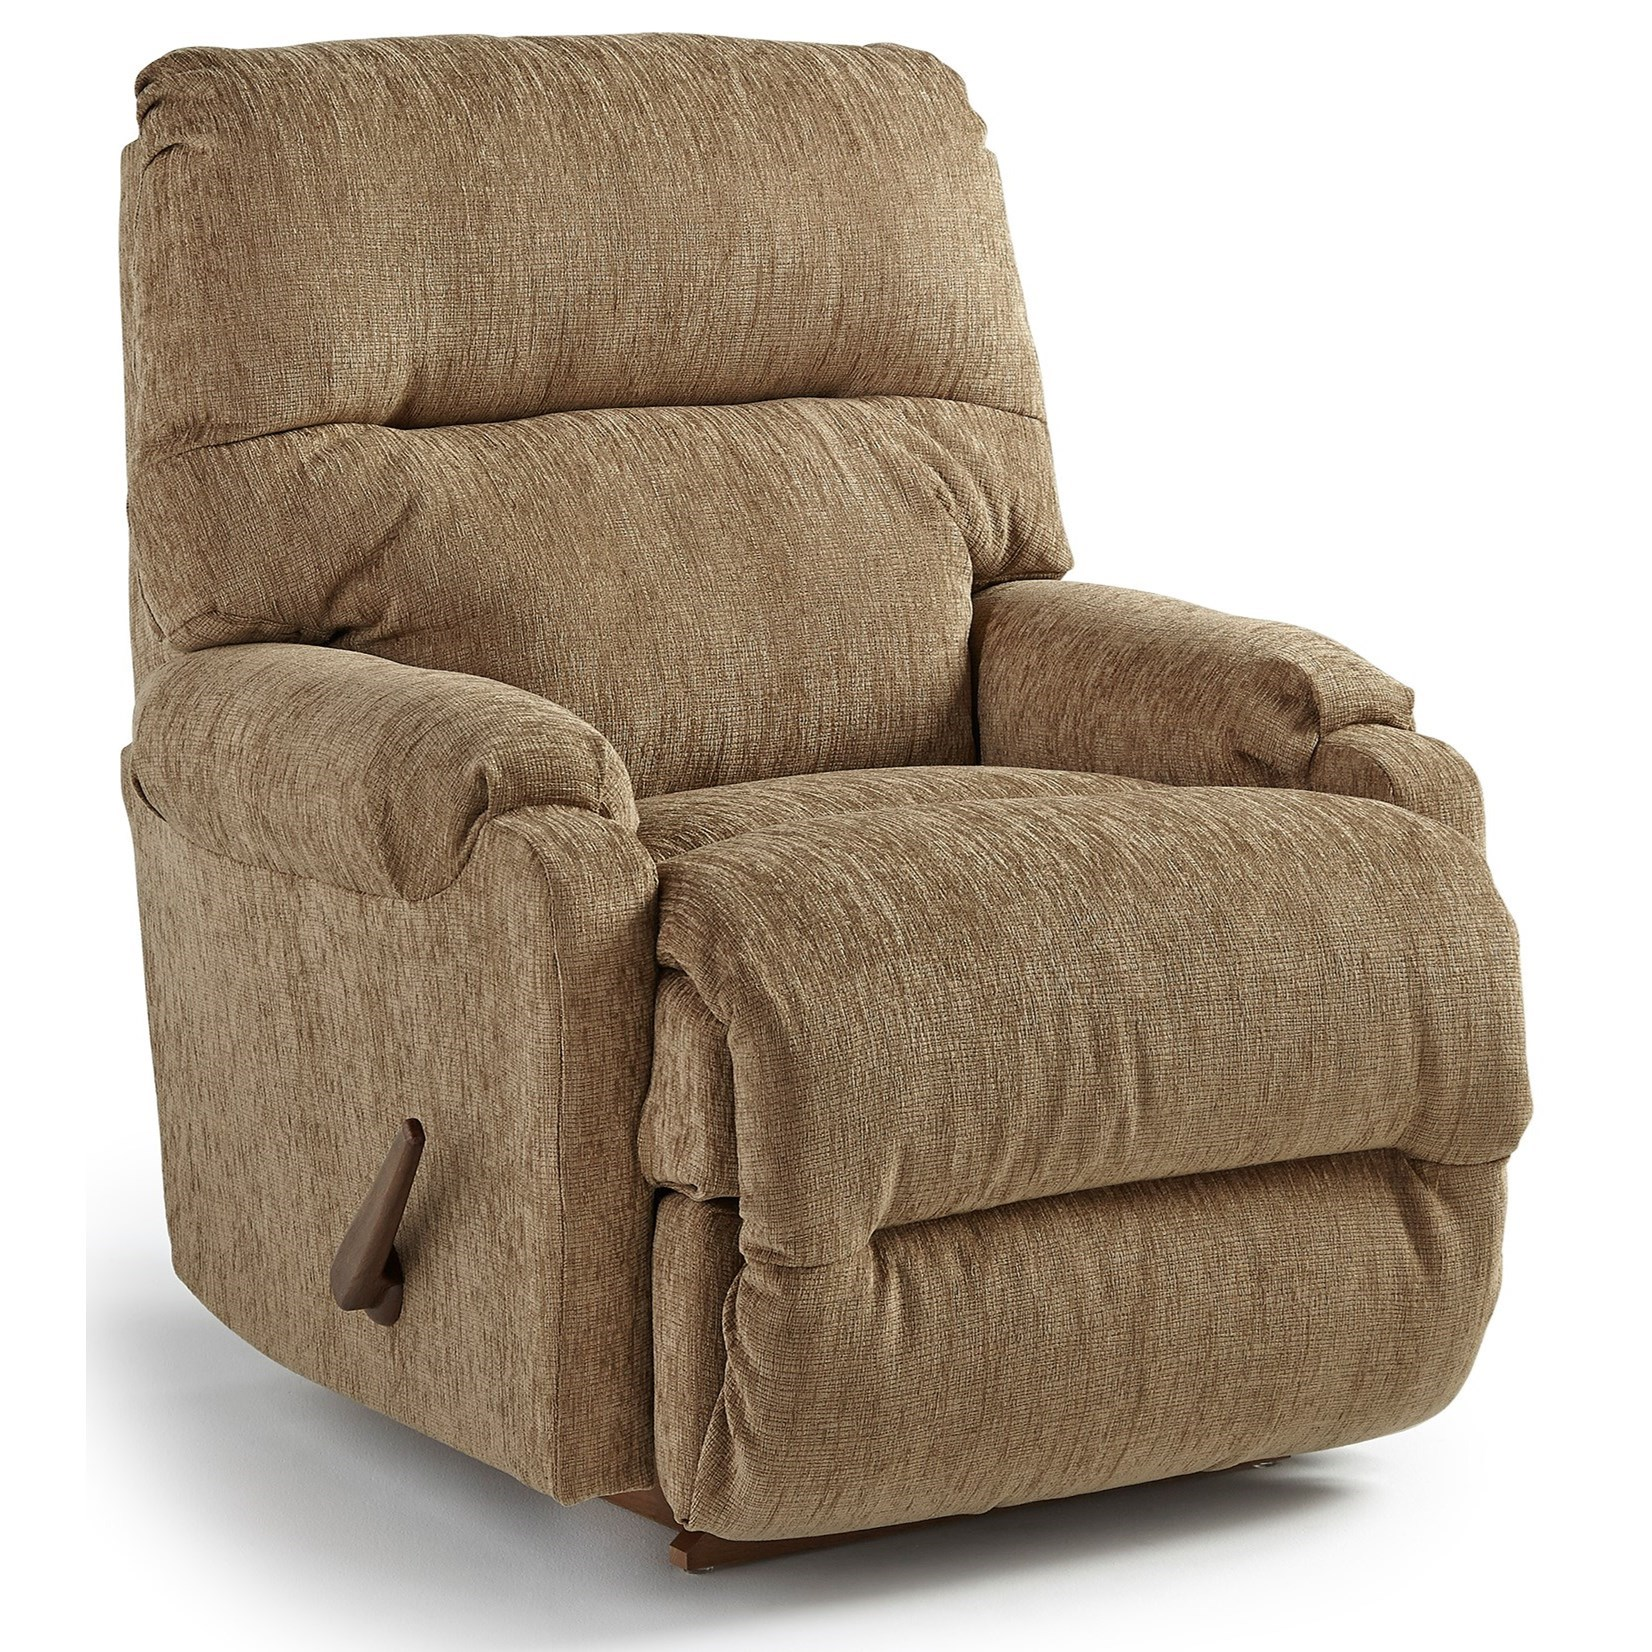 Power Rocking Reclining Chair By Best Home Furnishings